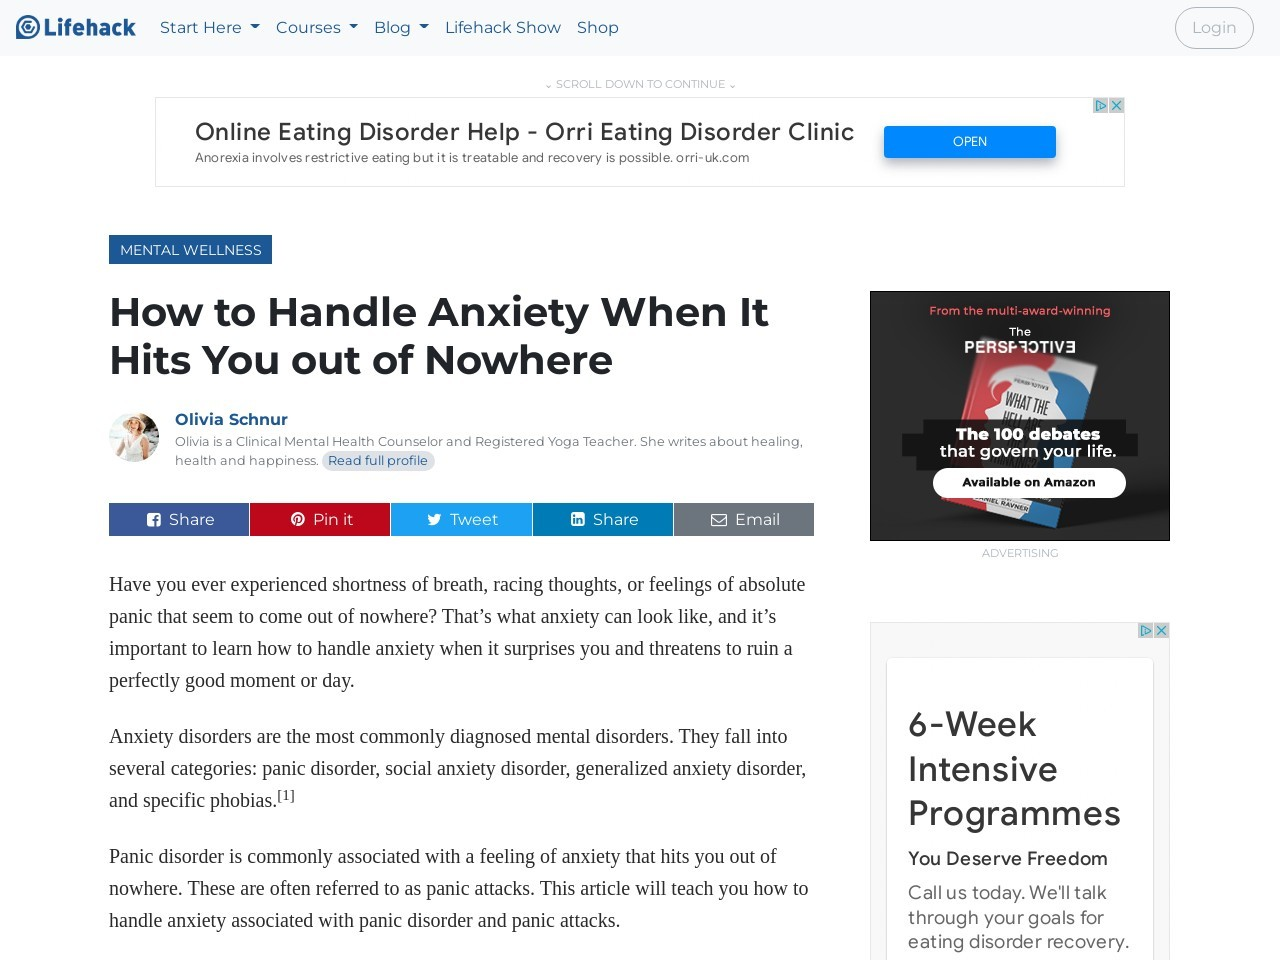 How to Handle Anxiety When It Hits You out of Nowhere